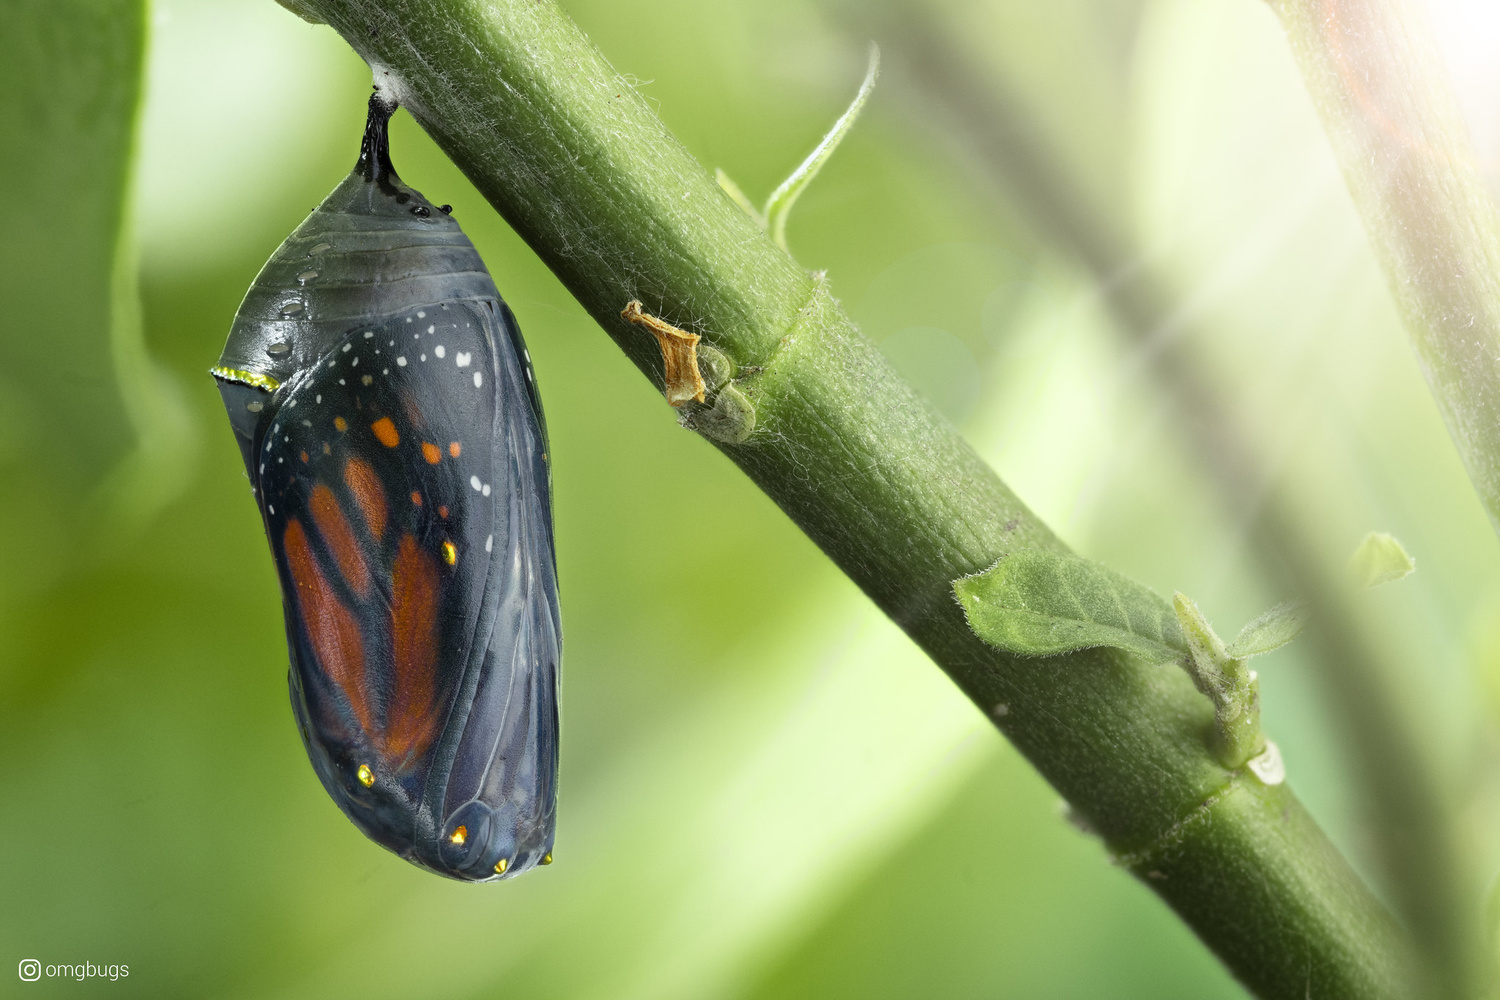 Butterfly Chrysalis - Today's the Day by Alberto Alanis